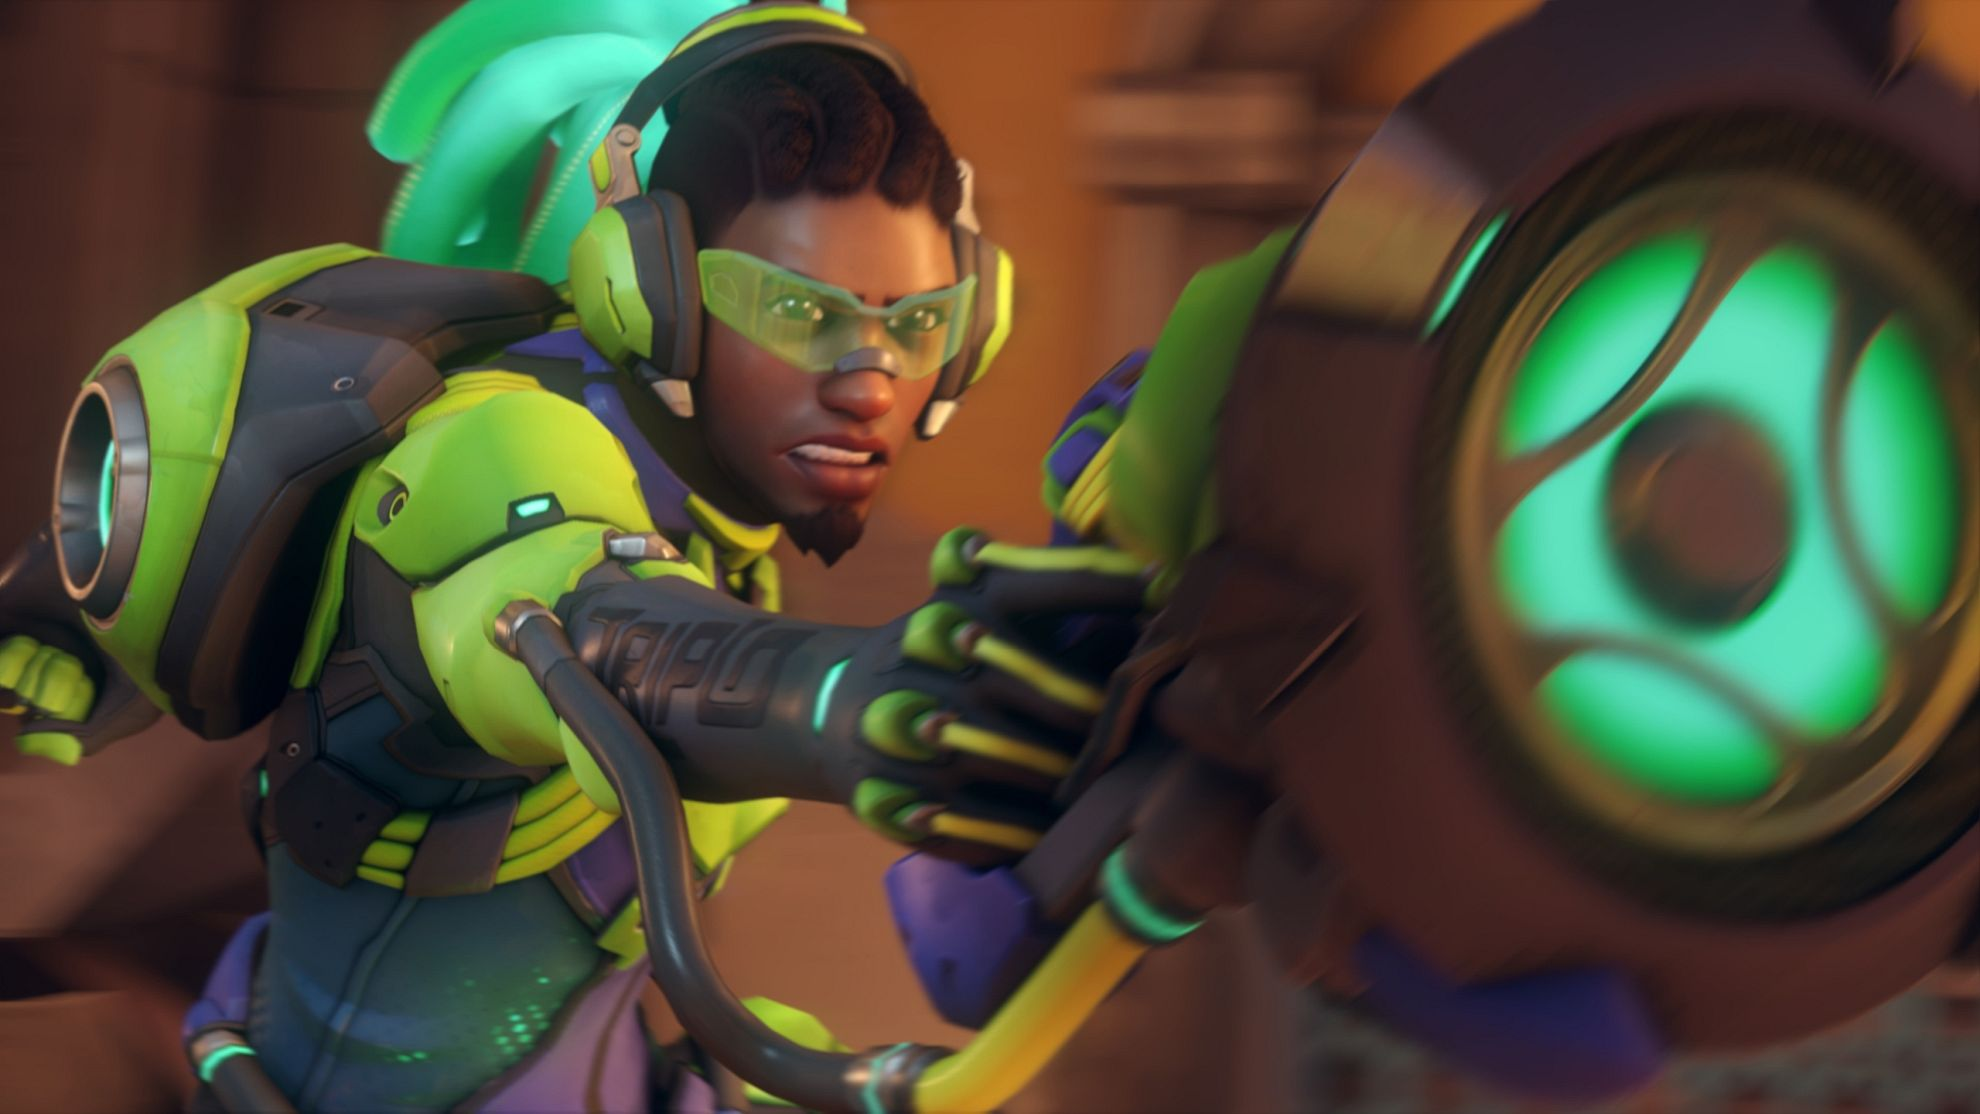 Overwatch 2 release date is at least a year away